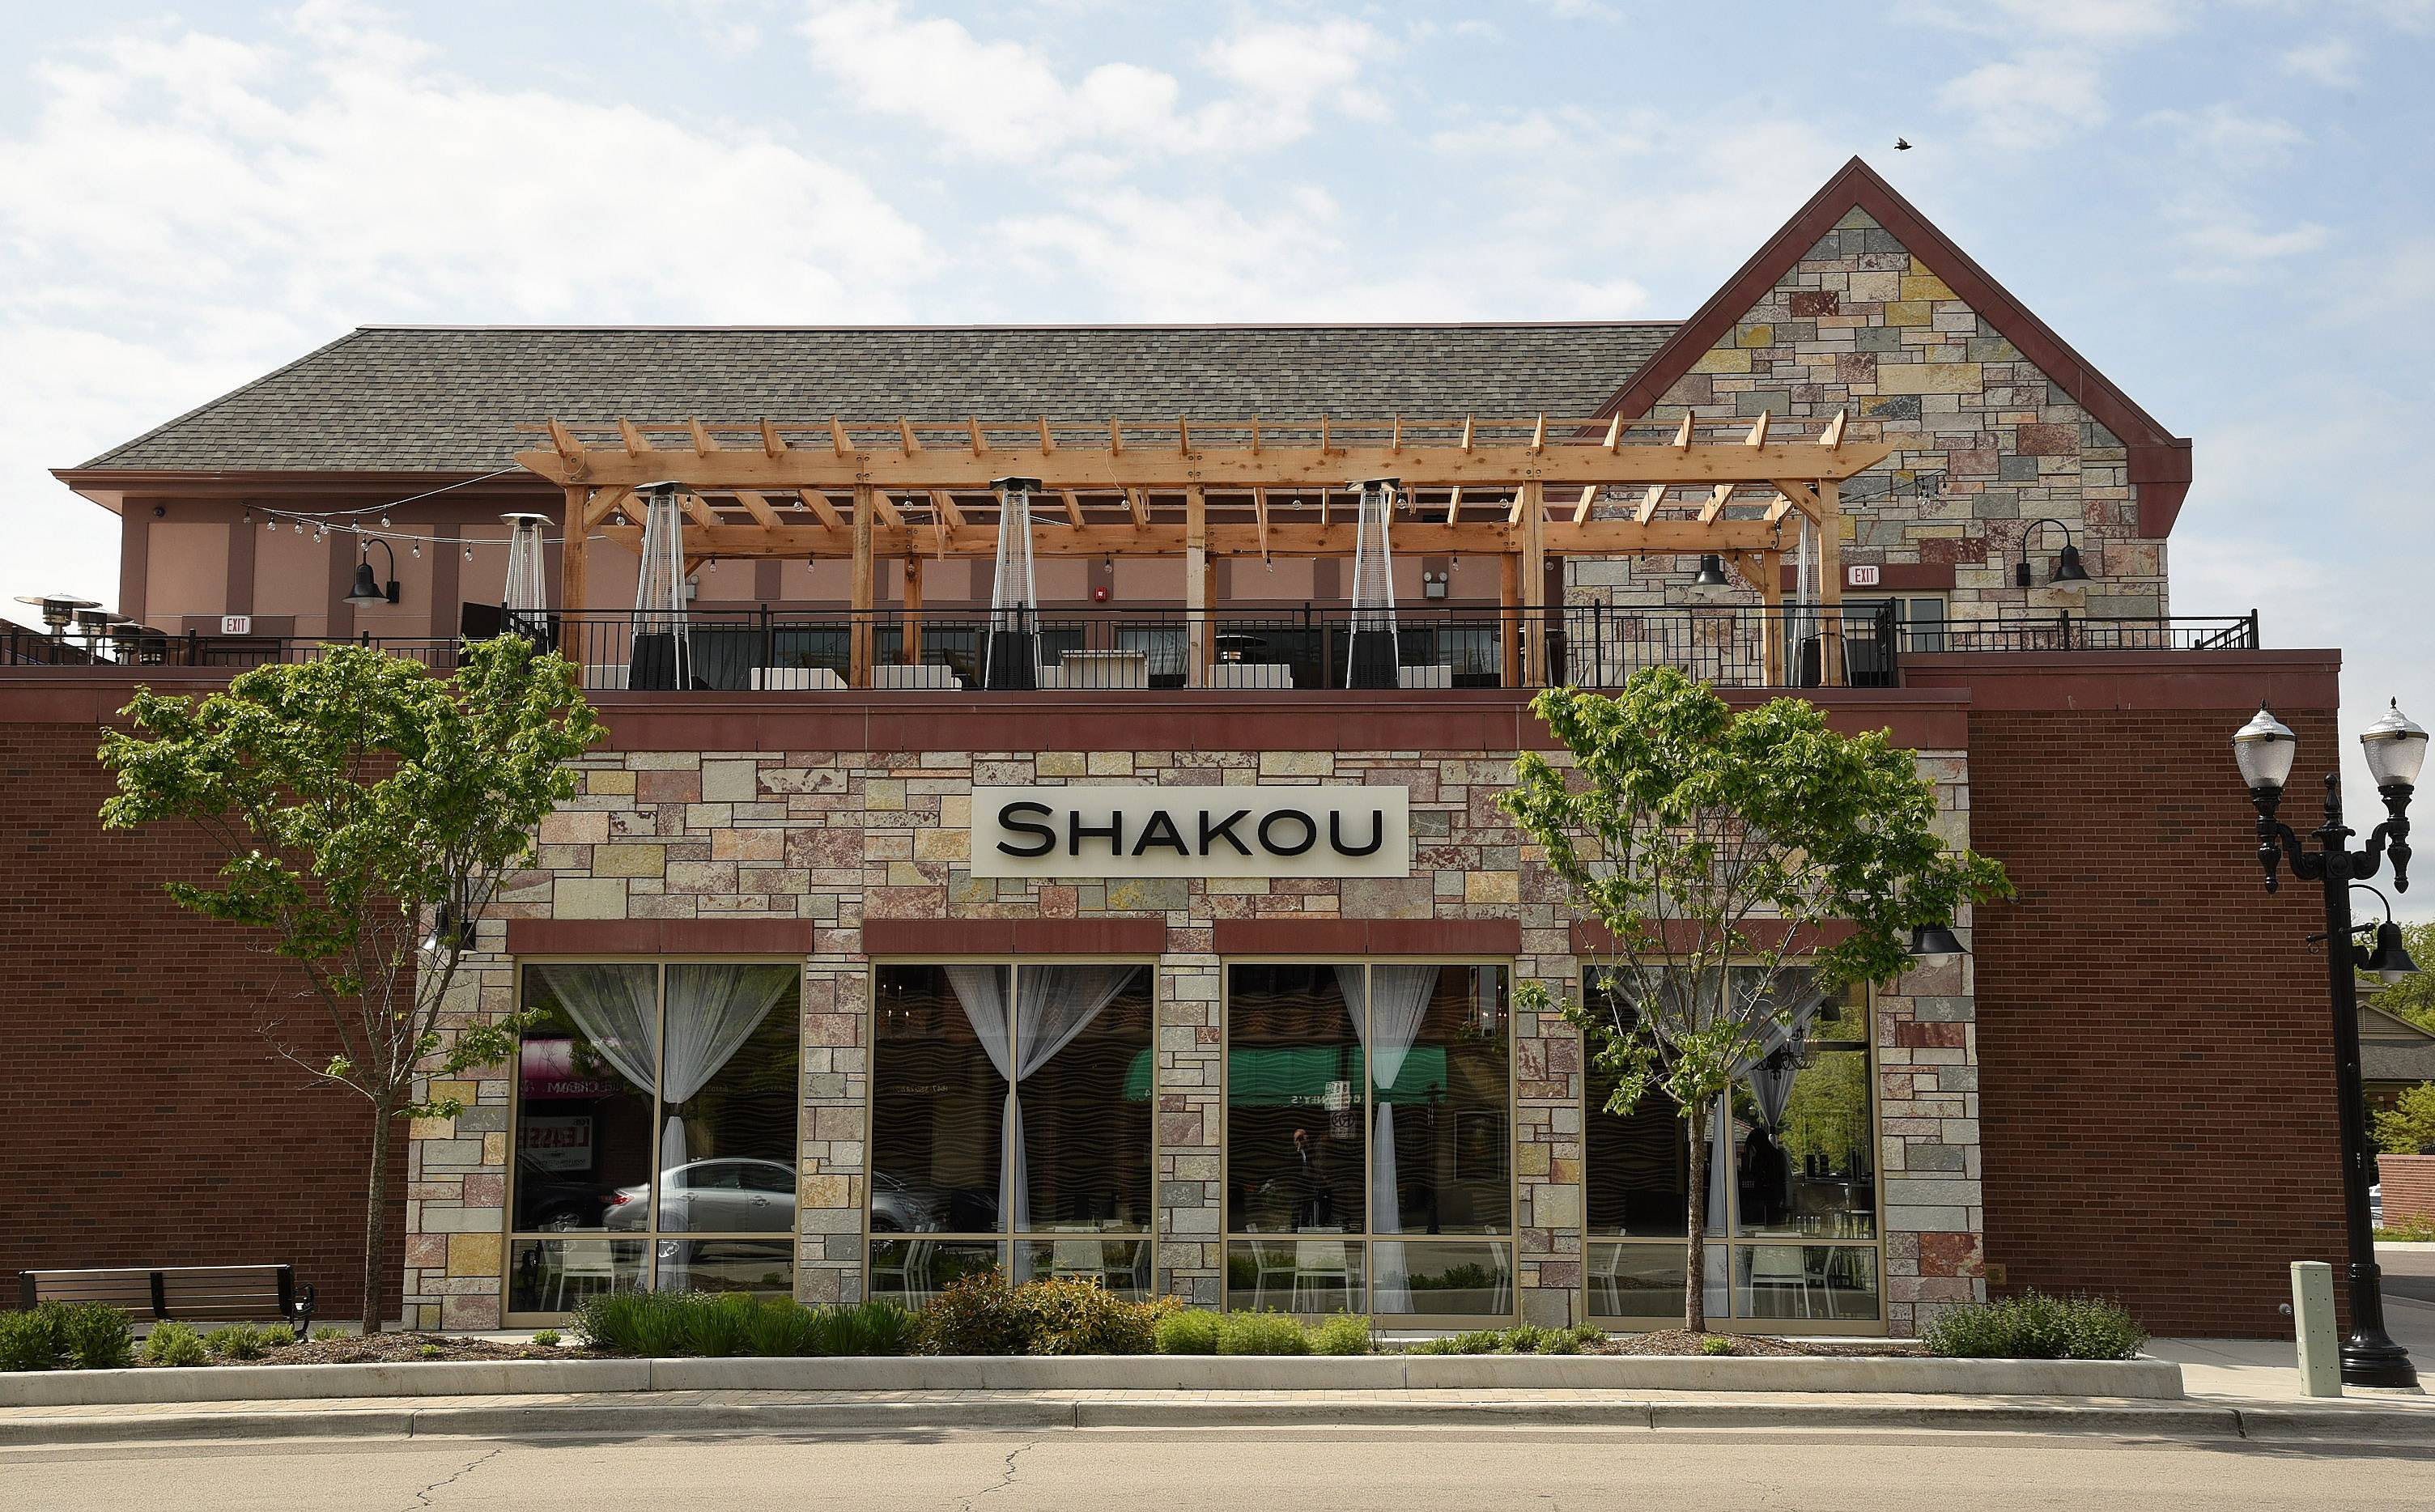 The trendy rooftop terrace at Shakou Barrington offers a unique outdoor dining experience for fans of Asian cuisine.